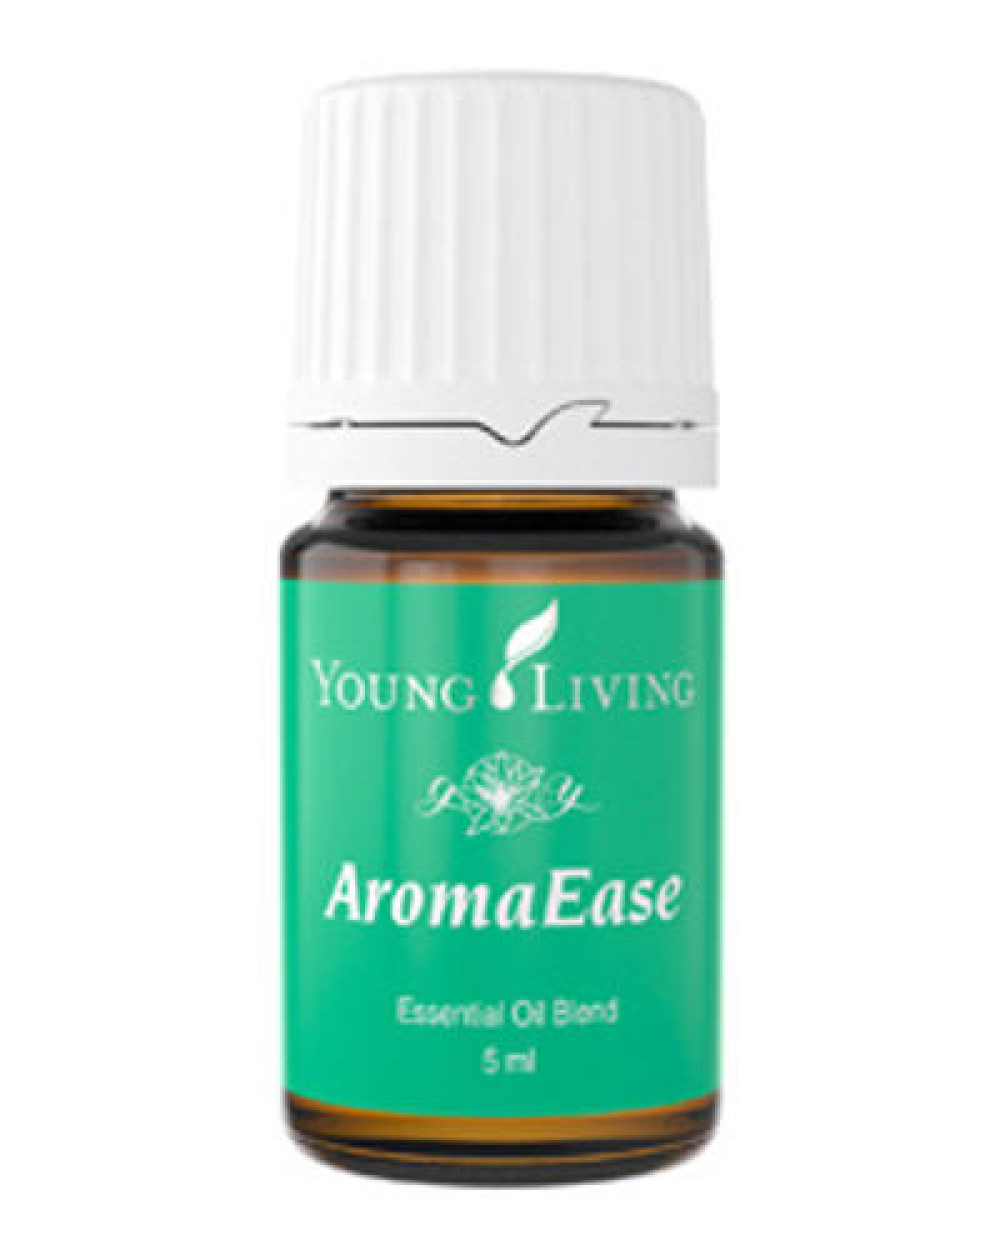 Young Living Aromaease Essential Oil 5ml